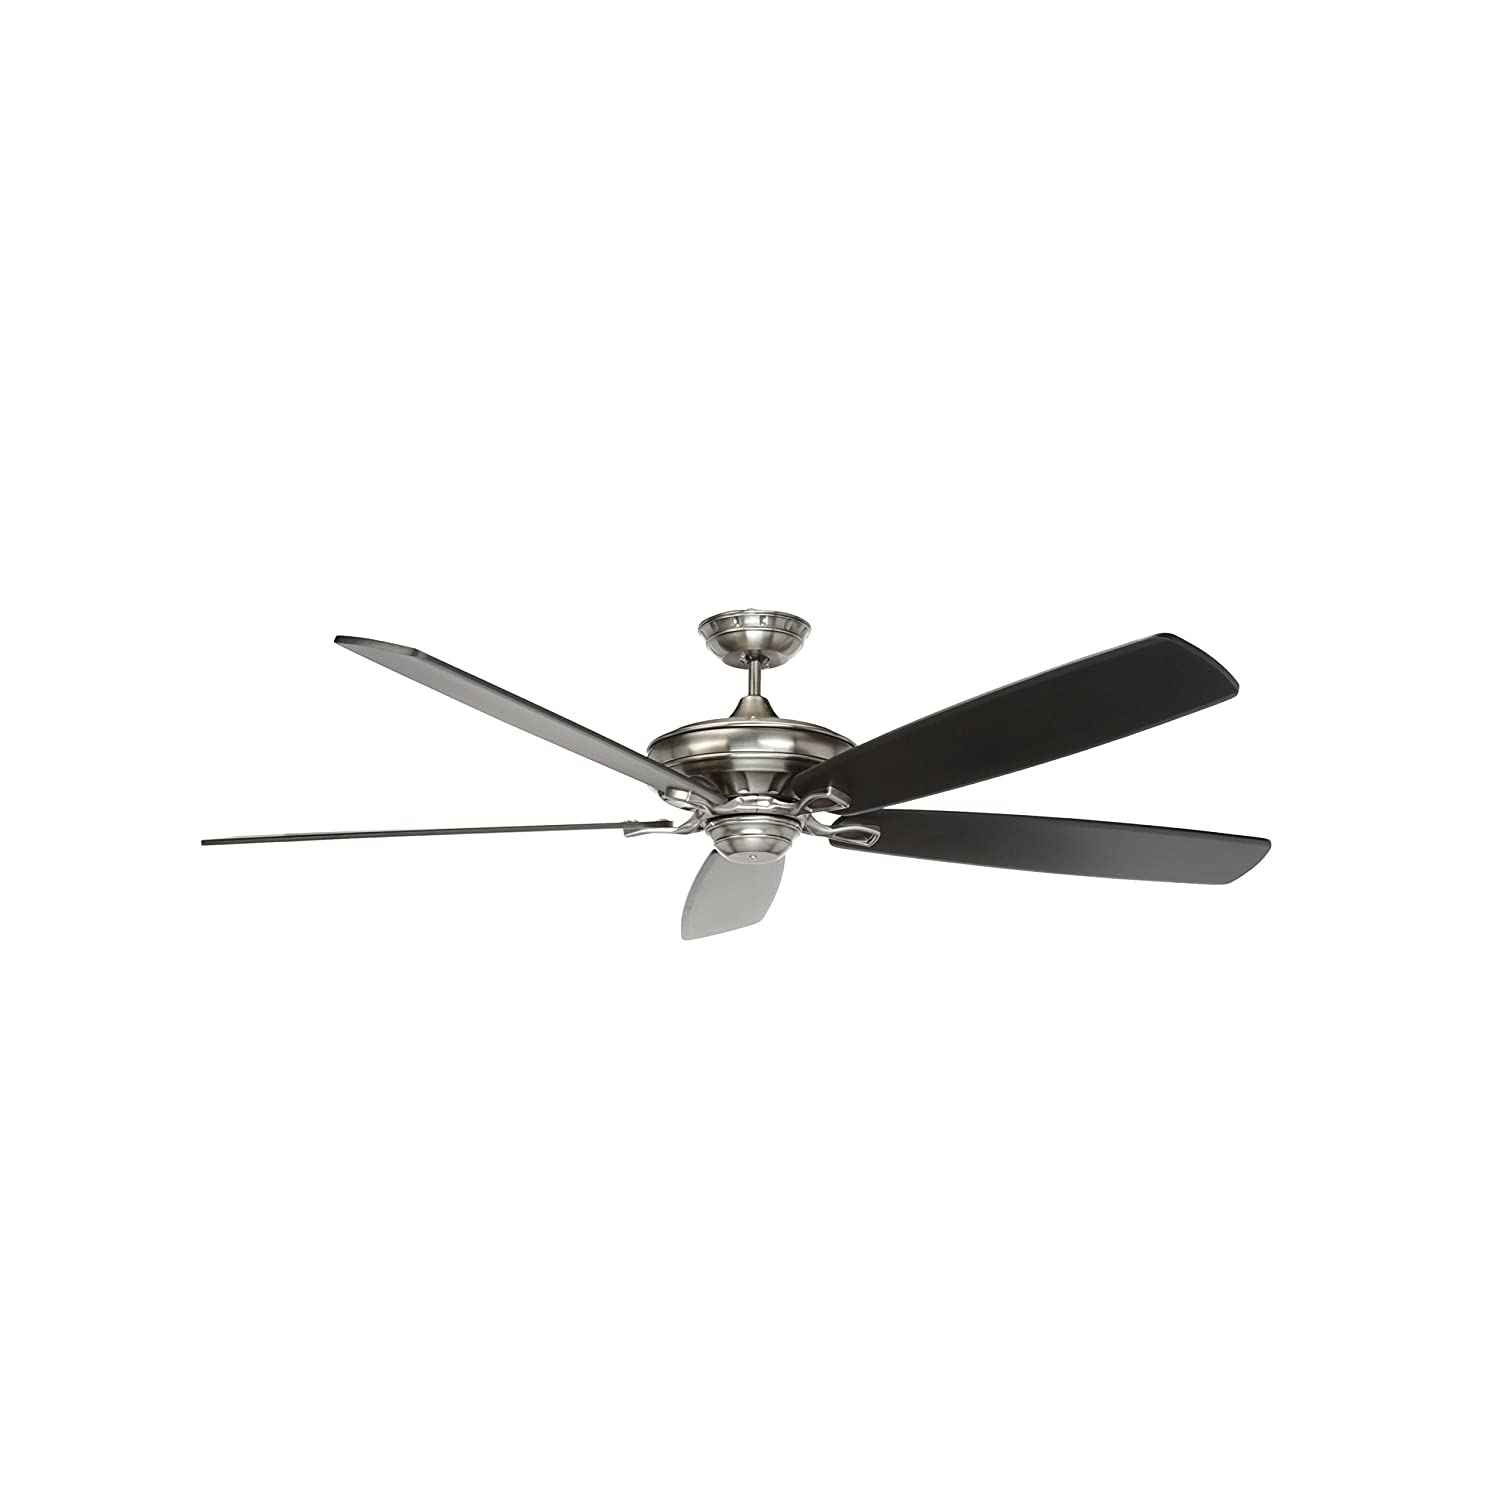 Emerson Ceiling Fans CF788AP Carrera Grande Eco Indoor Ceiling Fan With 6-Speed Wall Control, Energy Star Rated, Blades Sold Separately, Light Kit Adaptable, Antique Pewter Finish